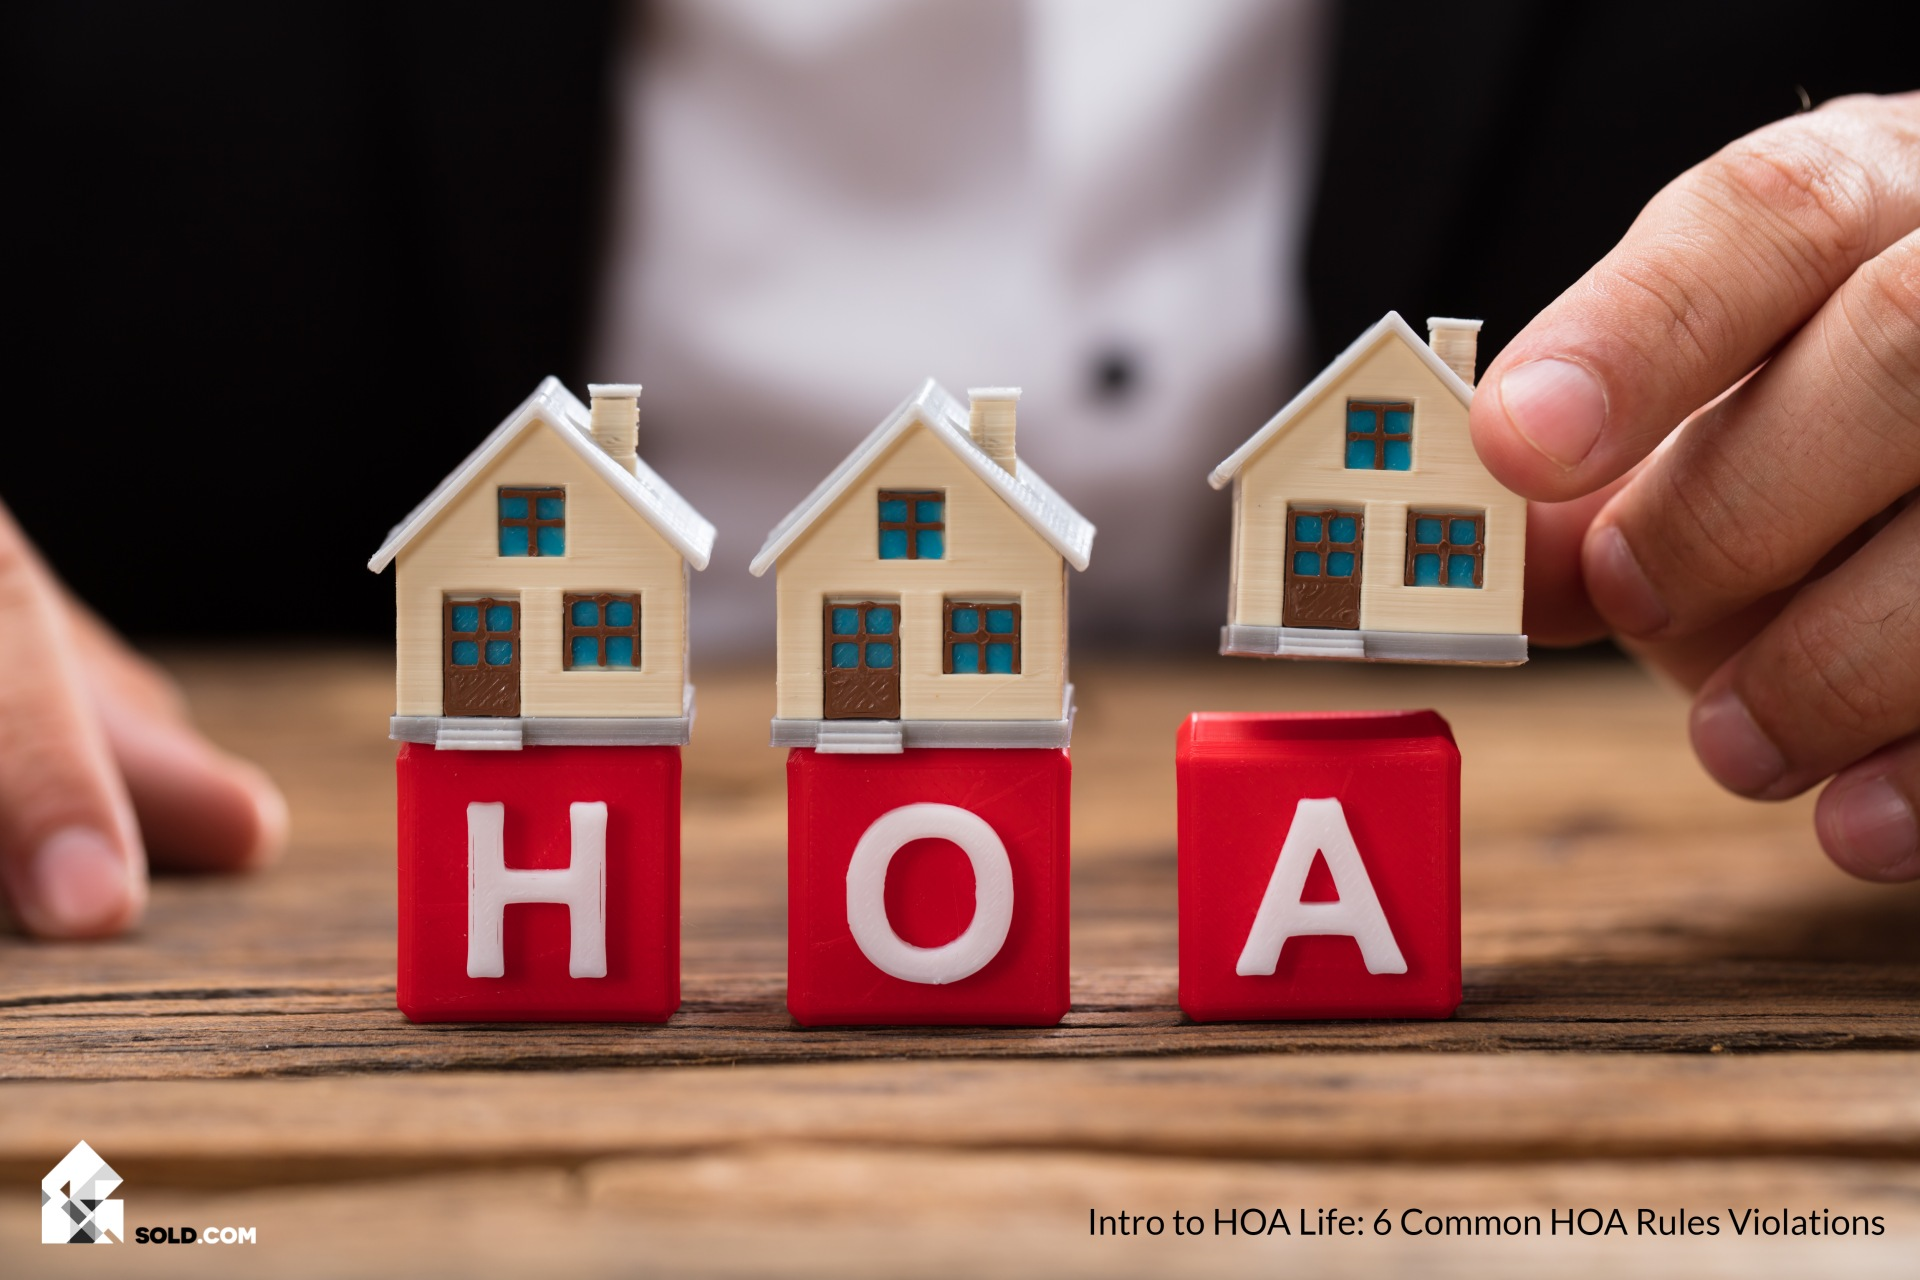 Intro to HOA Life: 6 Common HOA Rules Violations